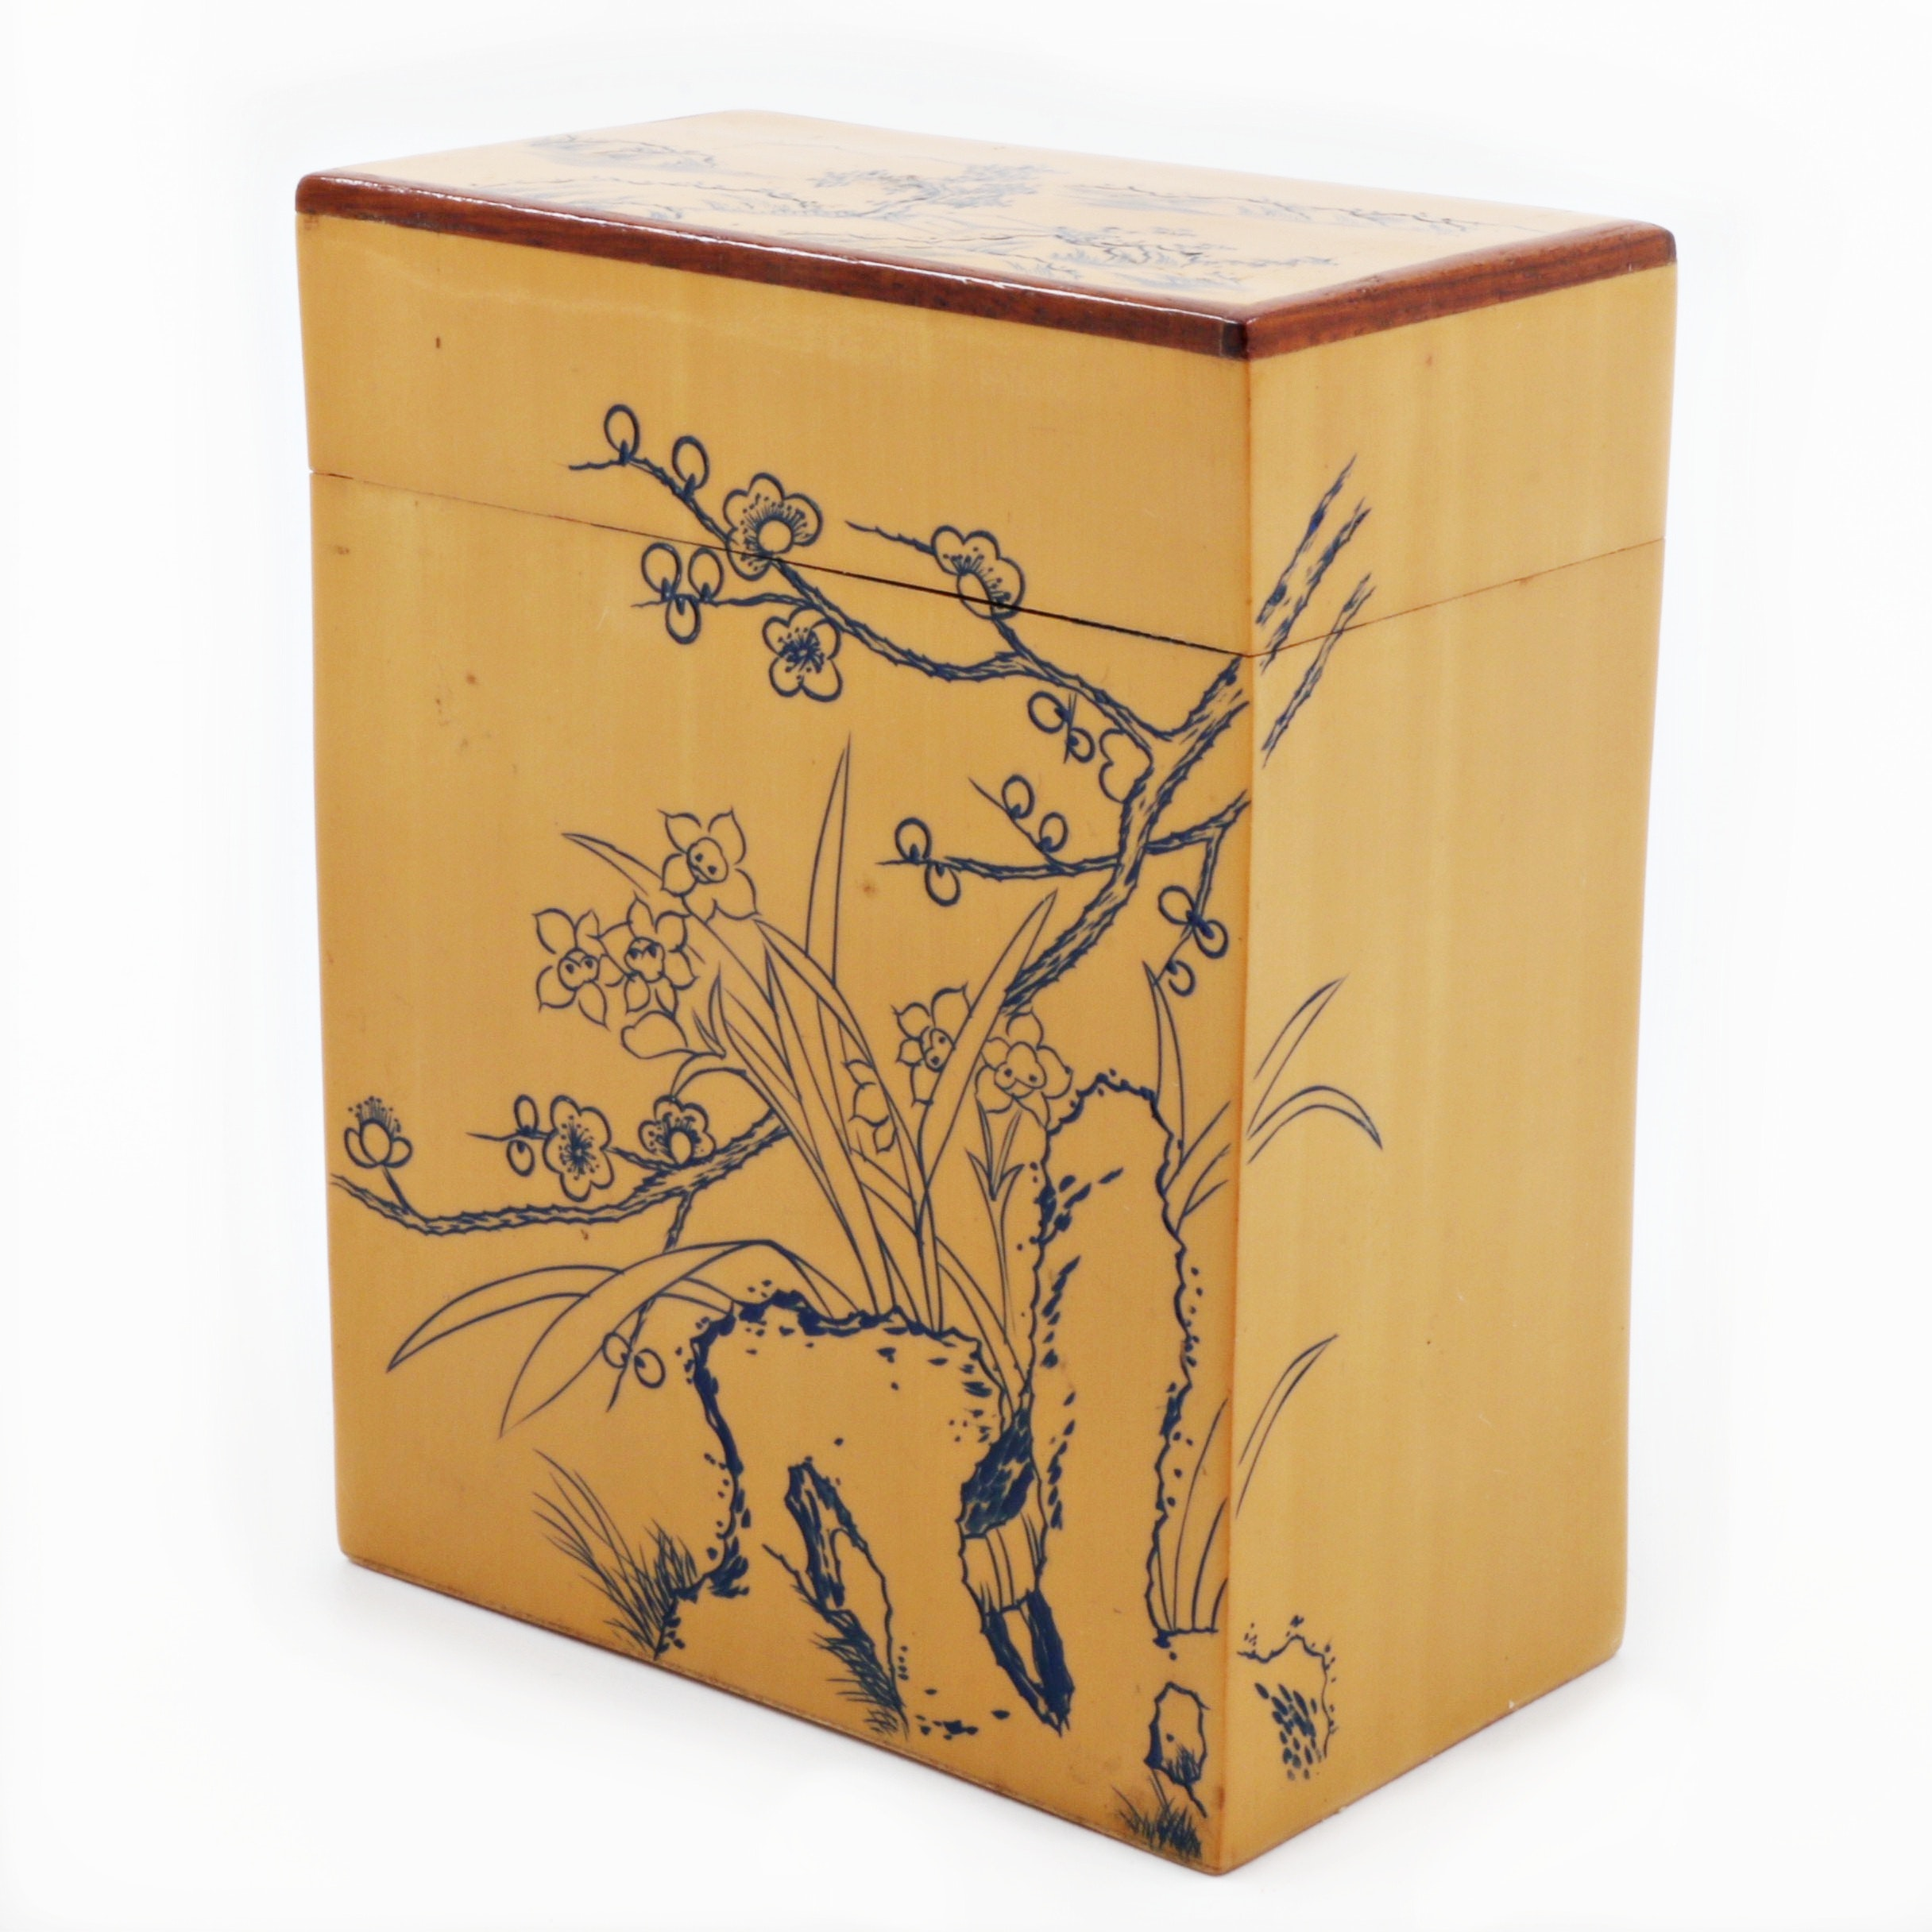 Chinese Lacquered Wood Box with Floral Motif